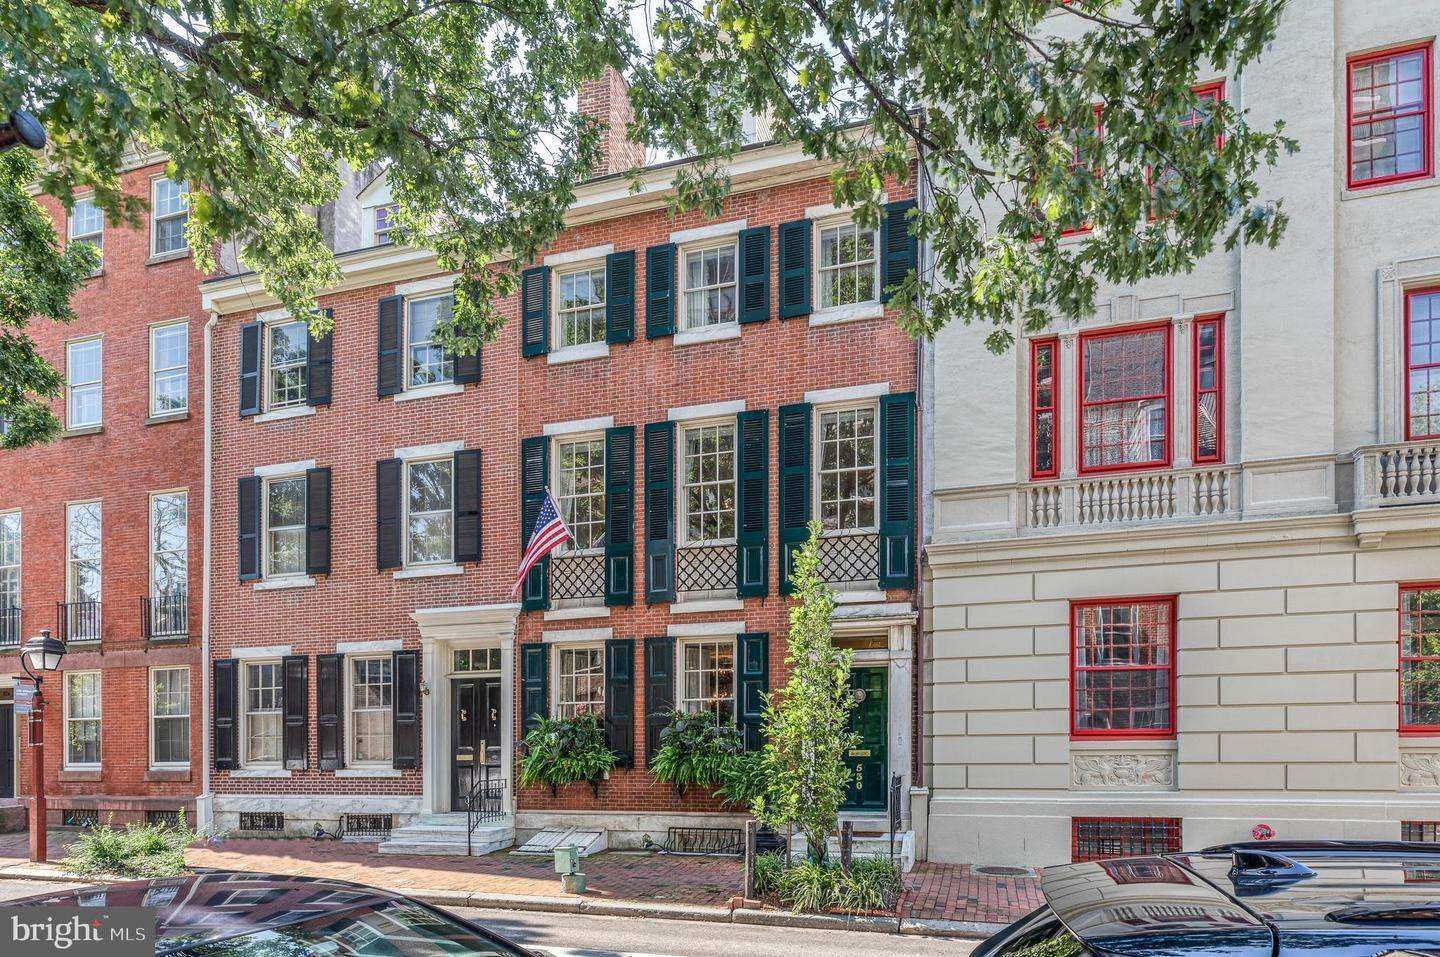 Residential for Sale at 530 SPRUCE Street Philadelphia, Pennsylvania 19106 United States